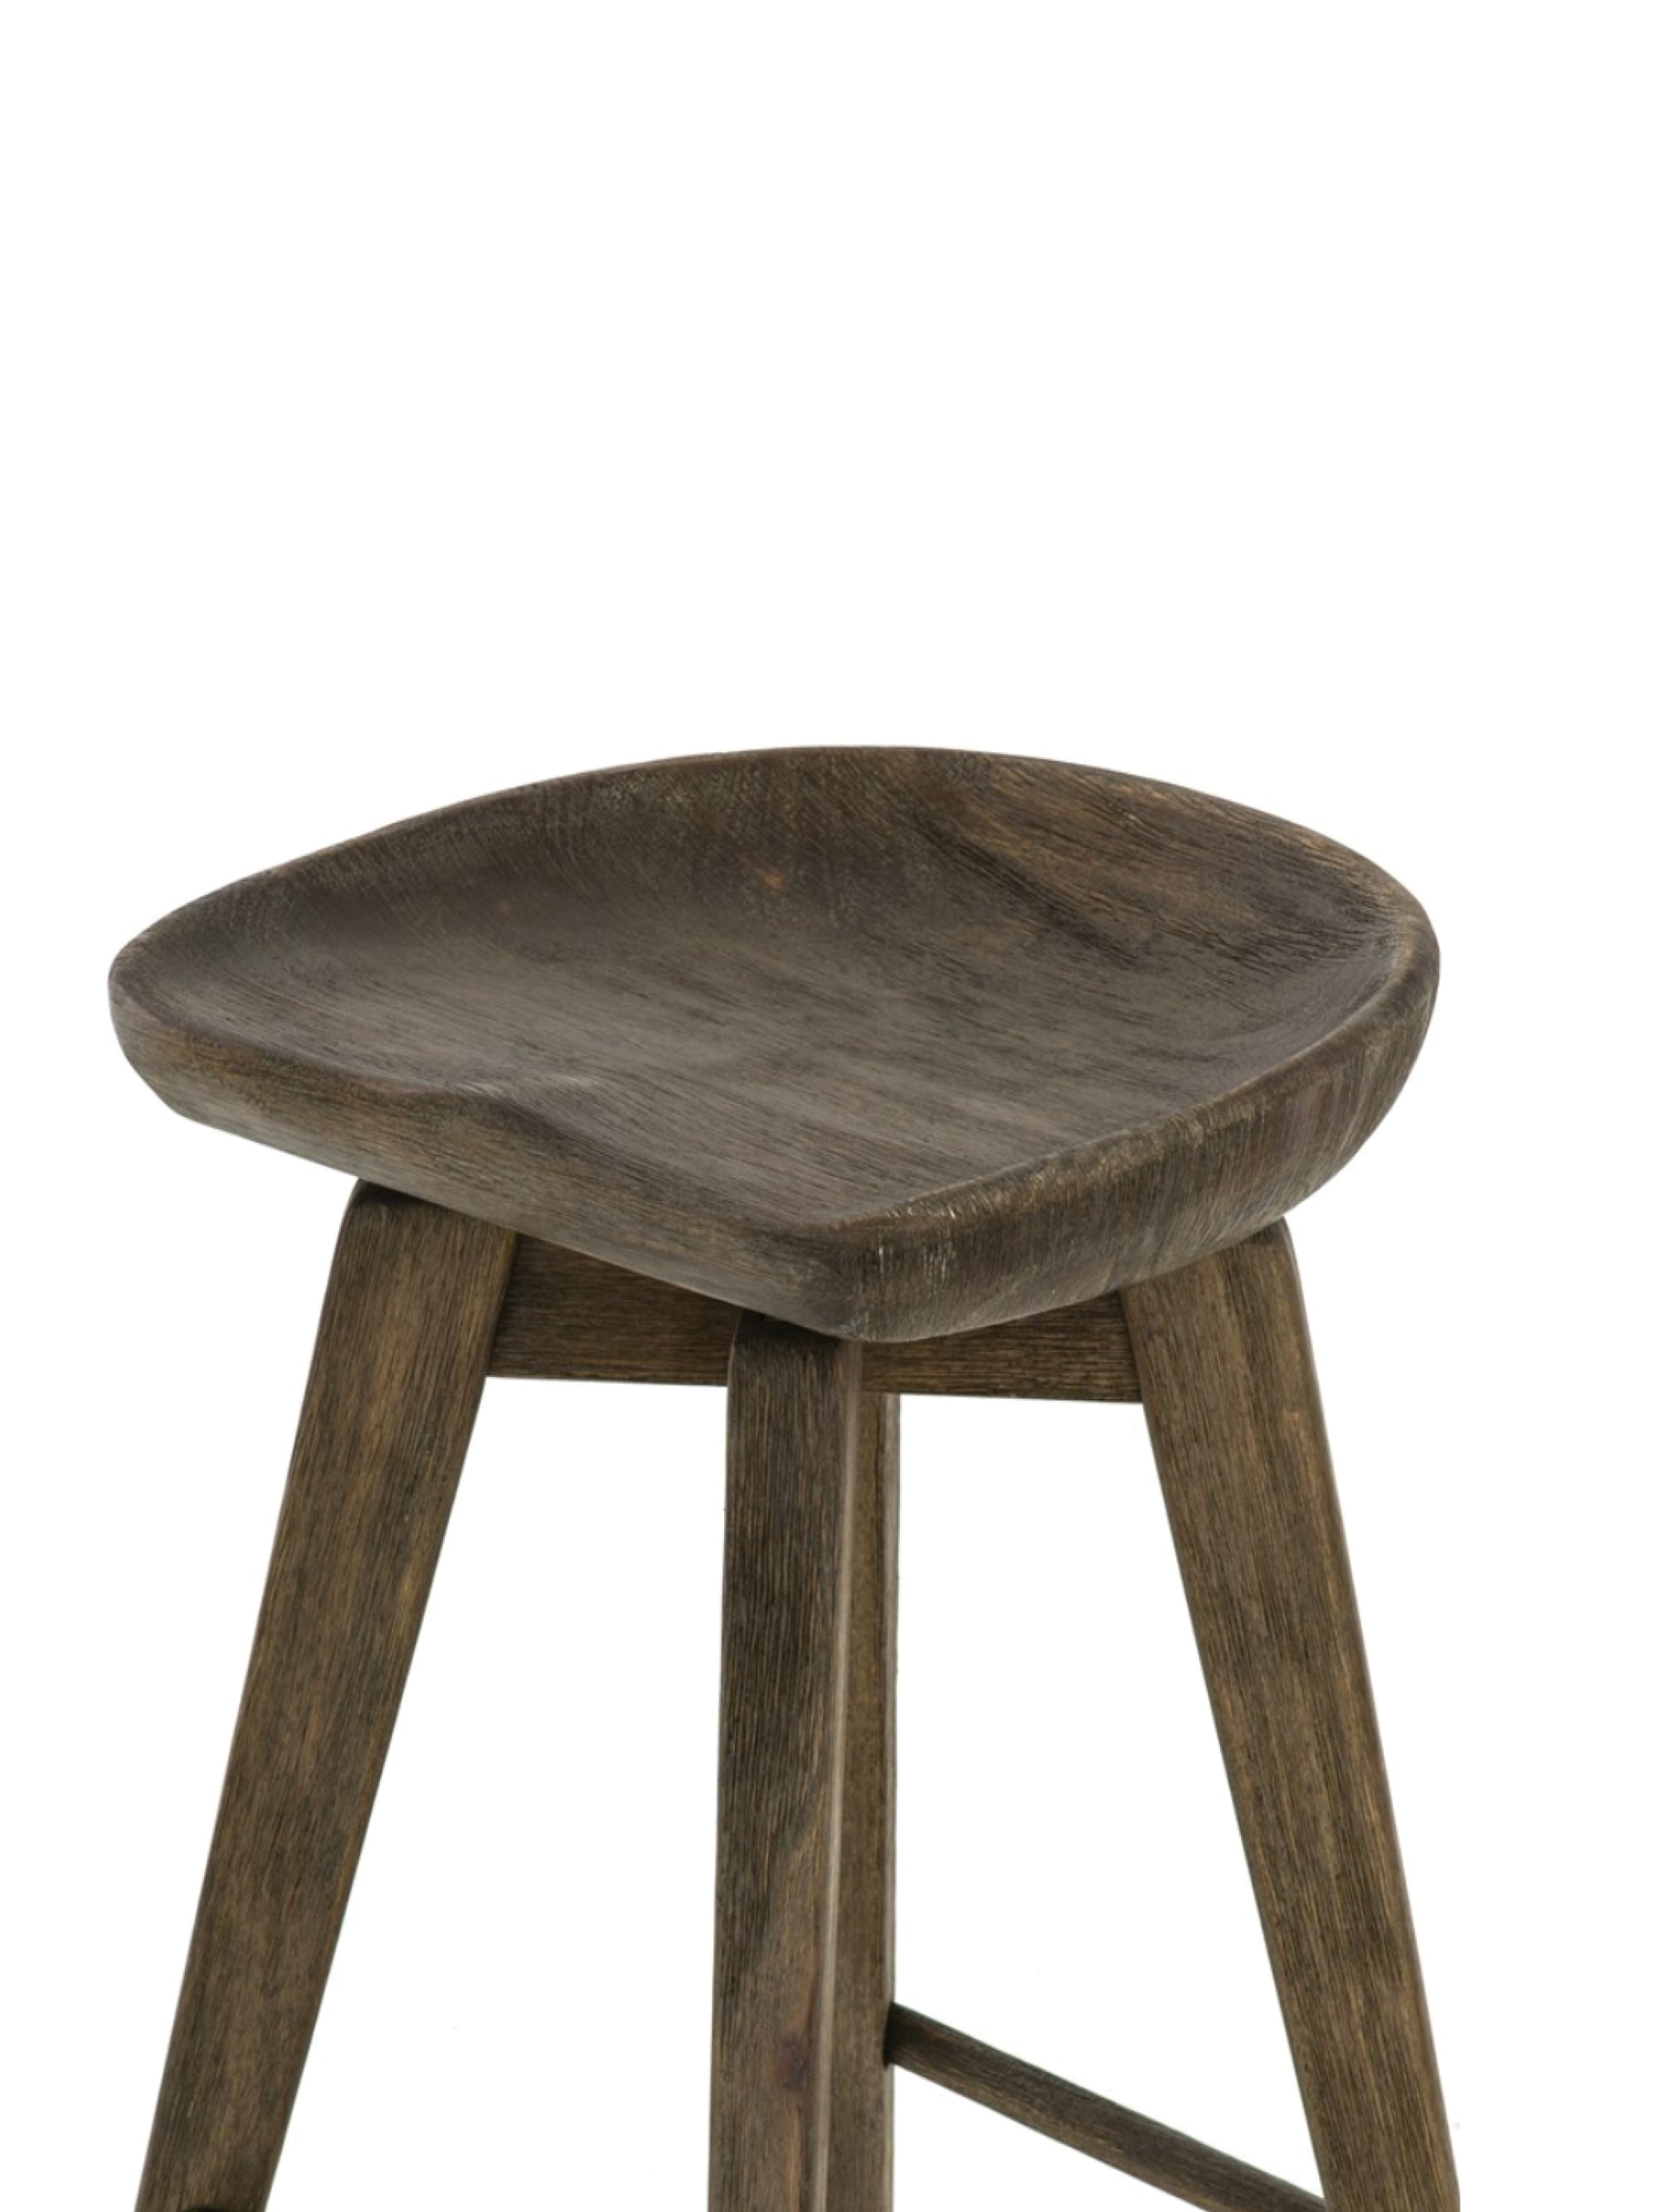 Wooden Swivel Bar + Counter Stool